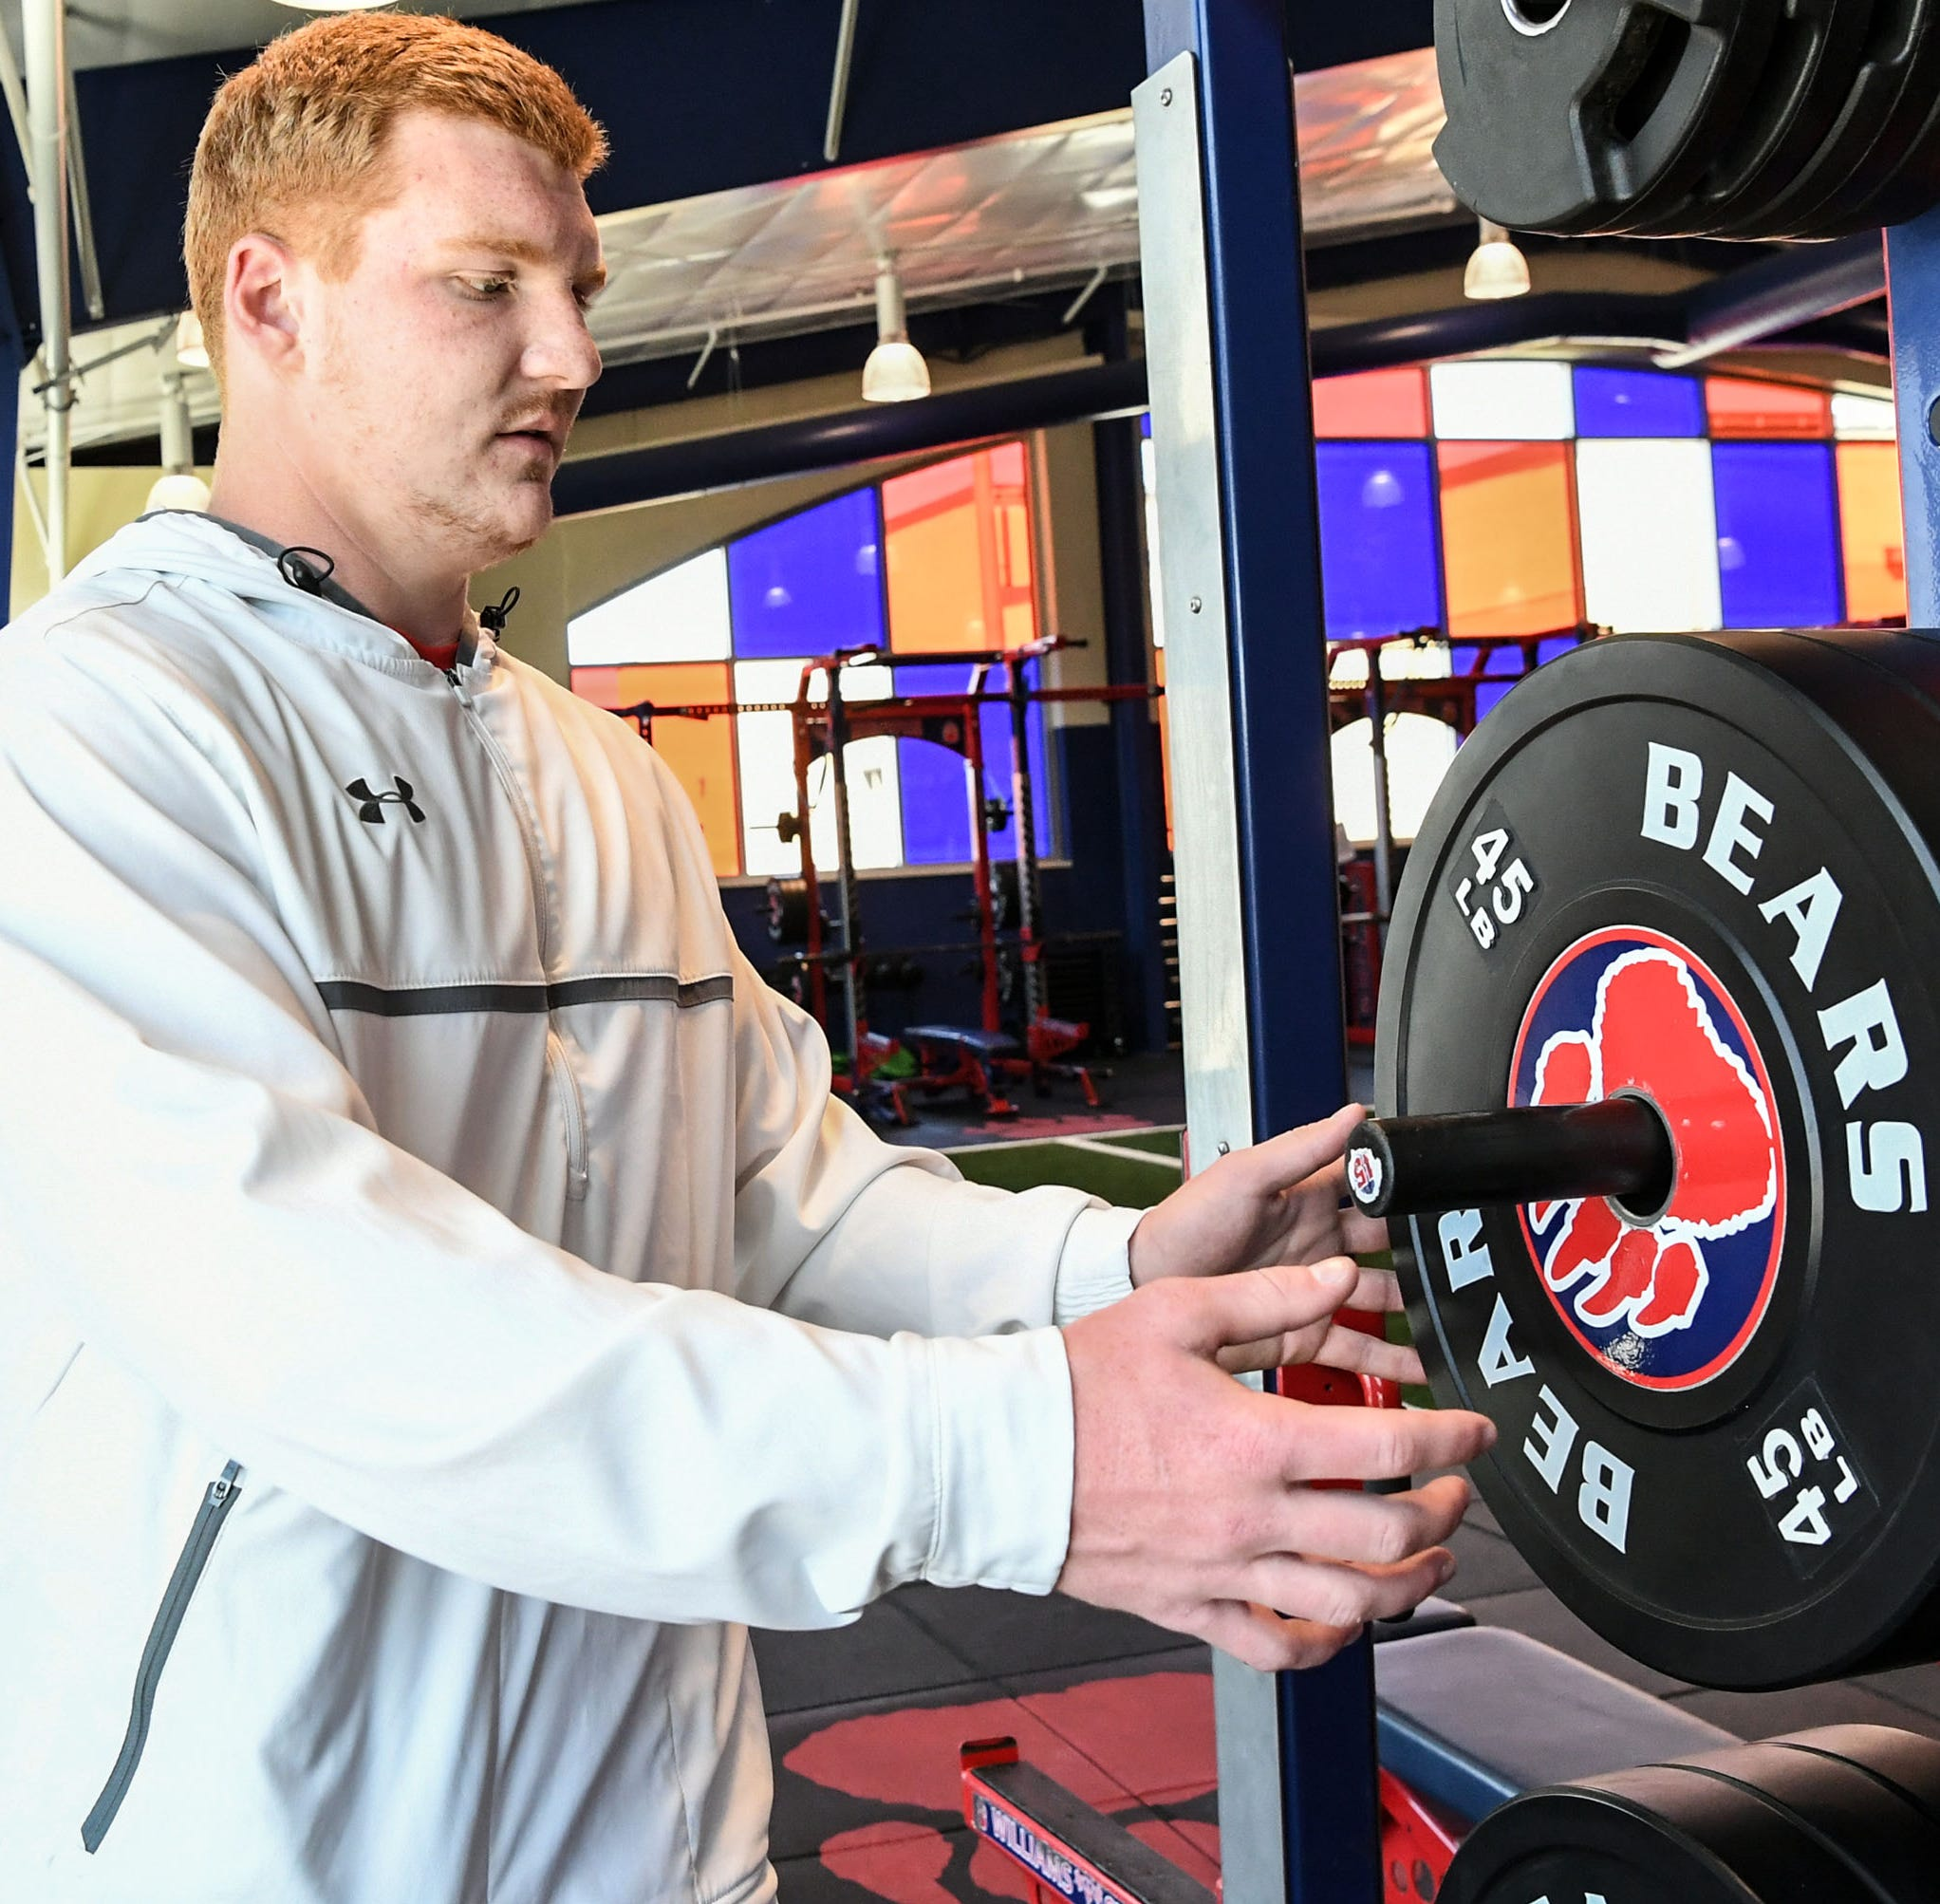 Anderson County athletes muscle their way to state high school weightlifting championships